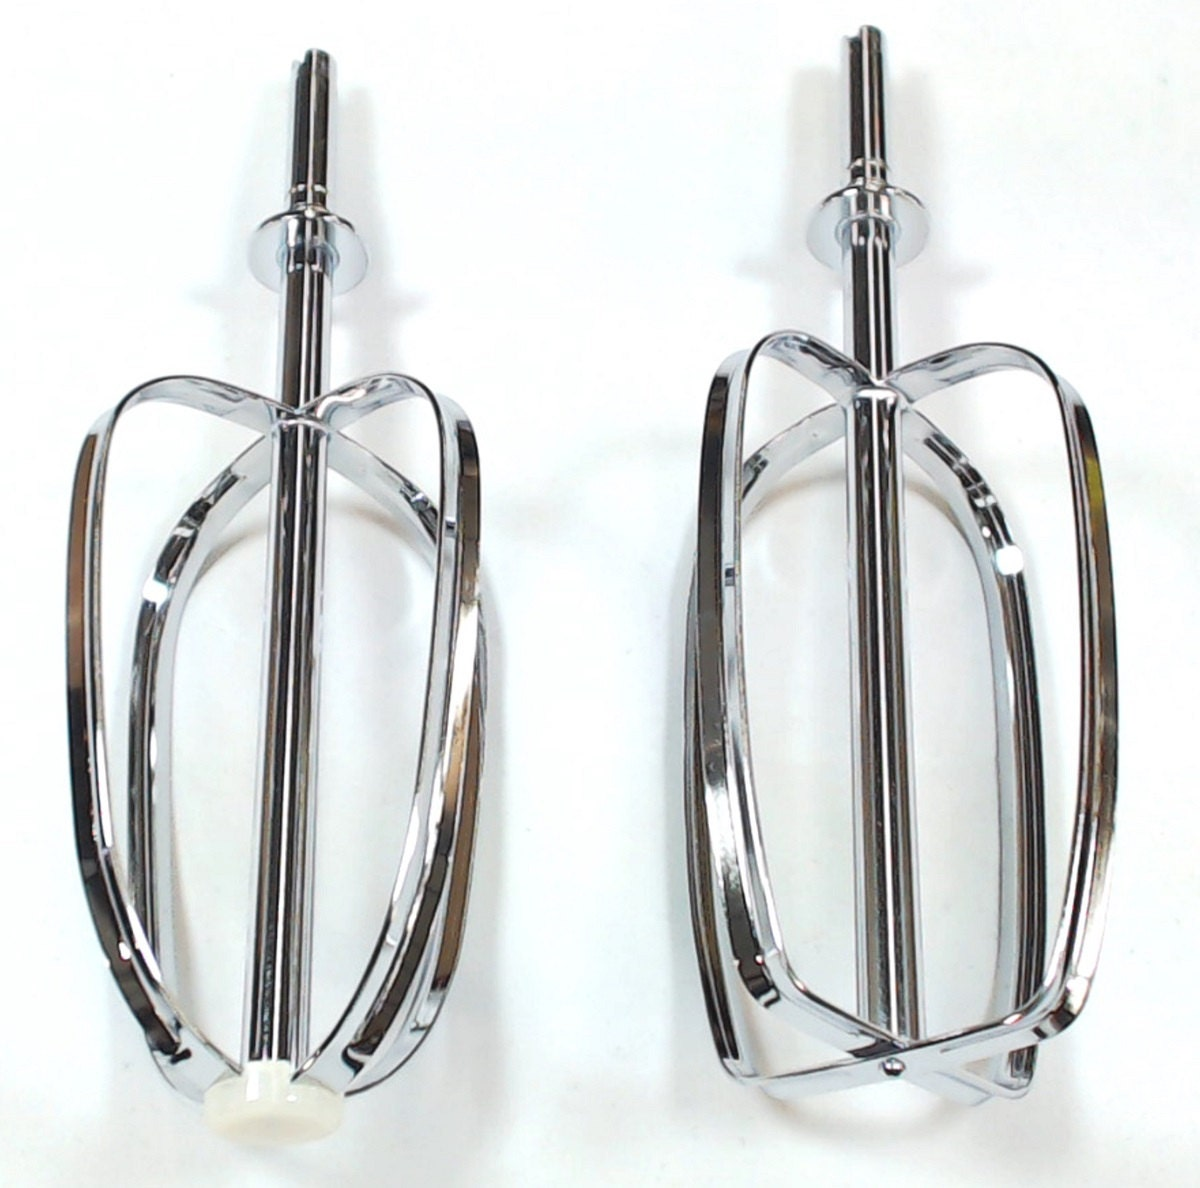 Hand Mixer Replacement Beaters For ~ Sunbeam mixmaster replacement beaters for models